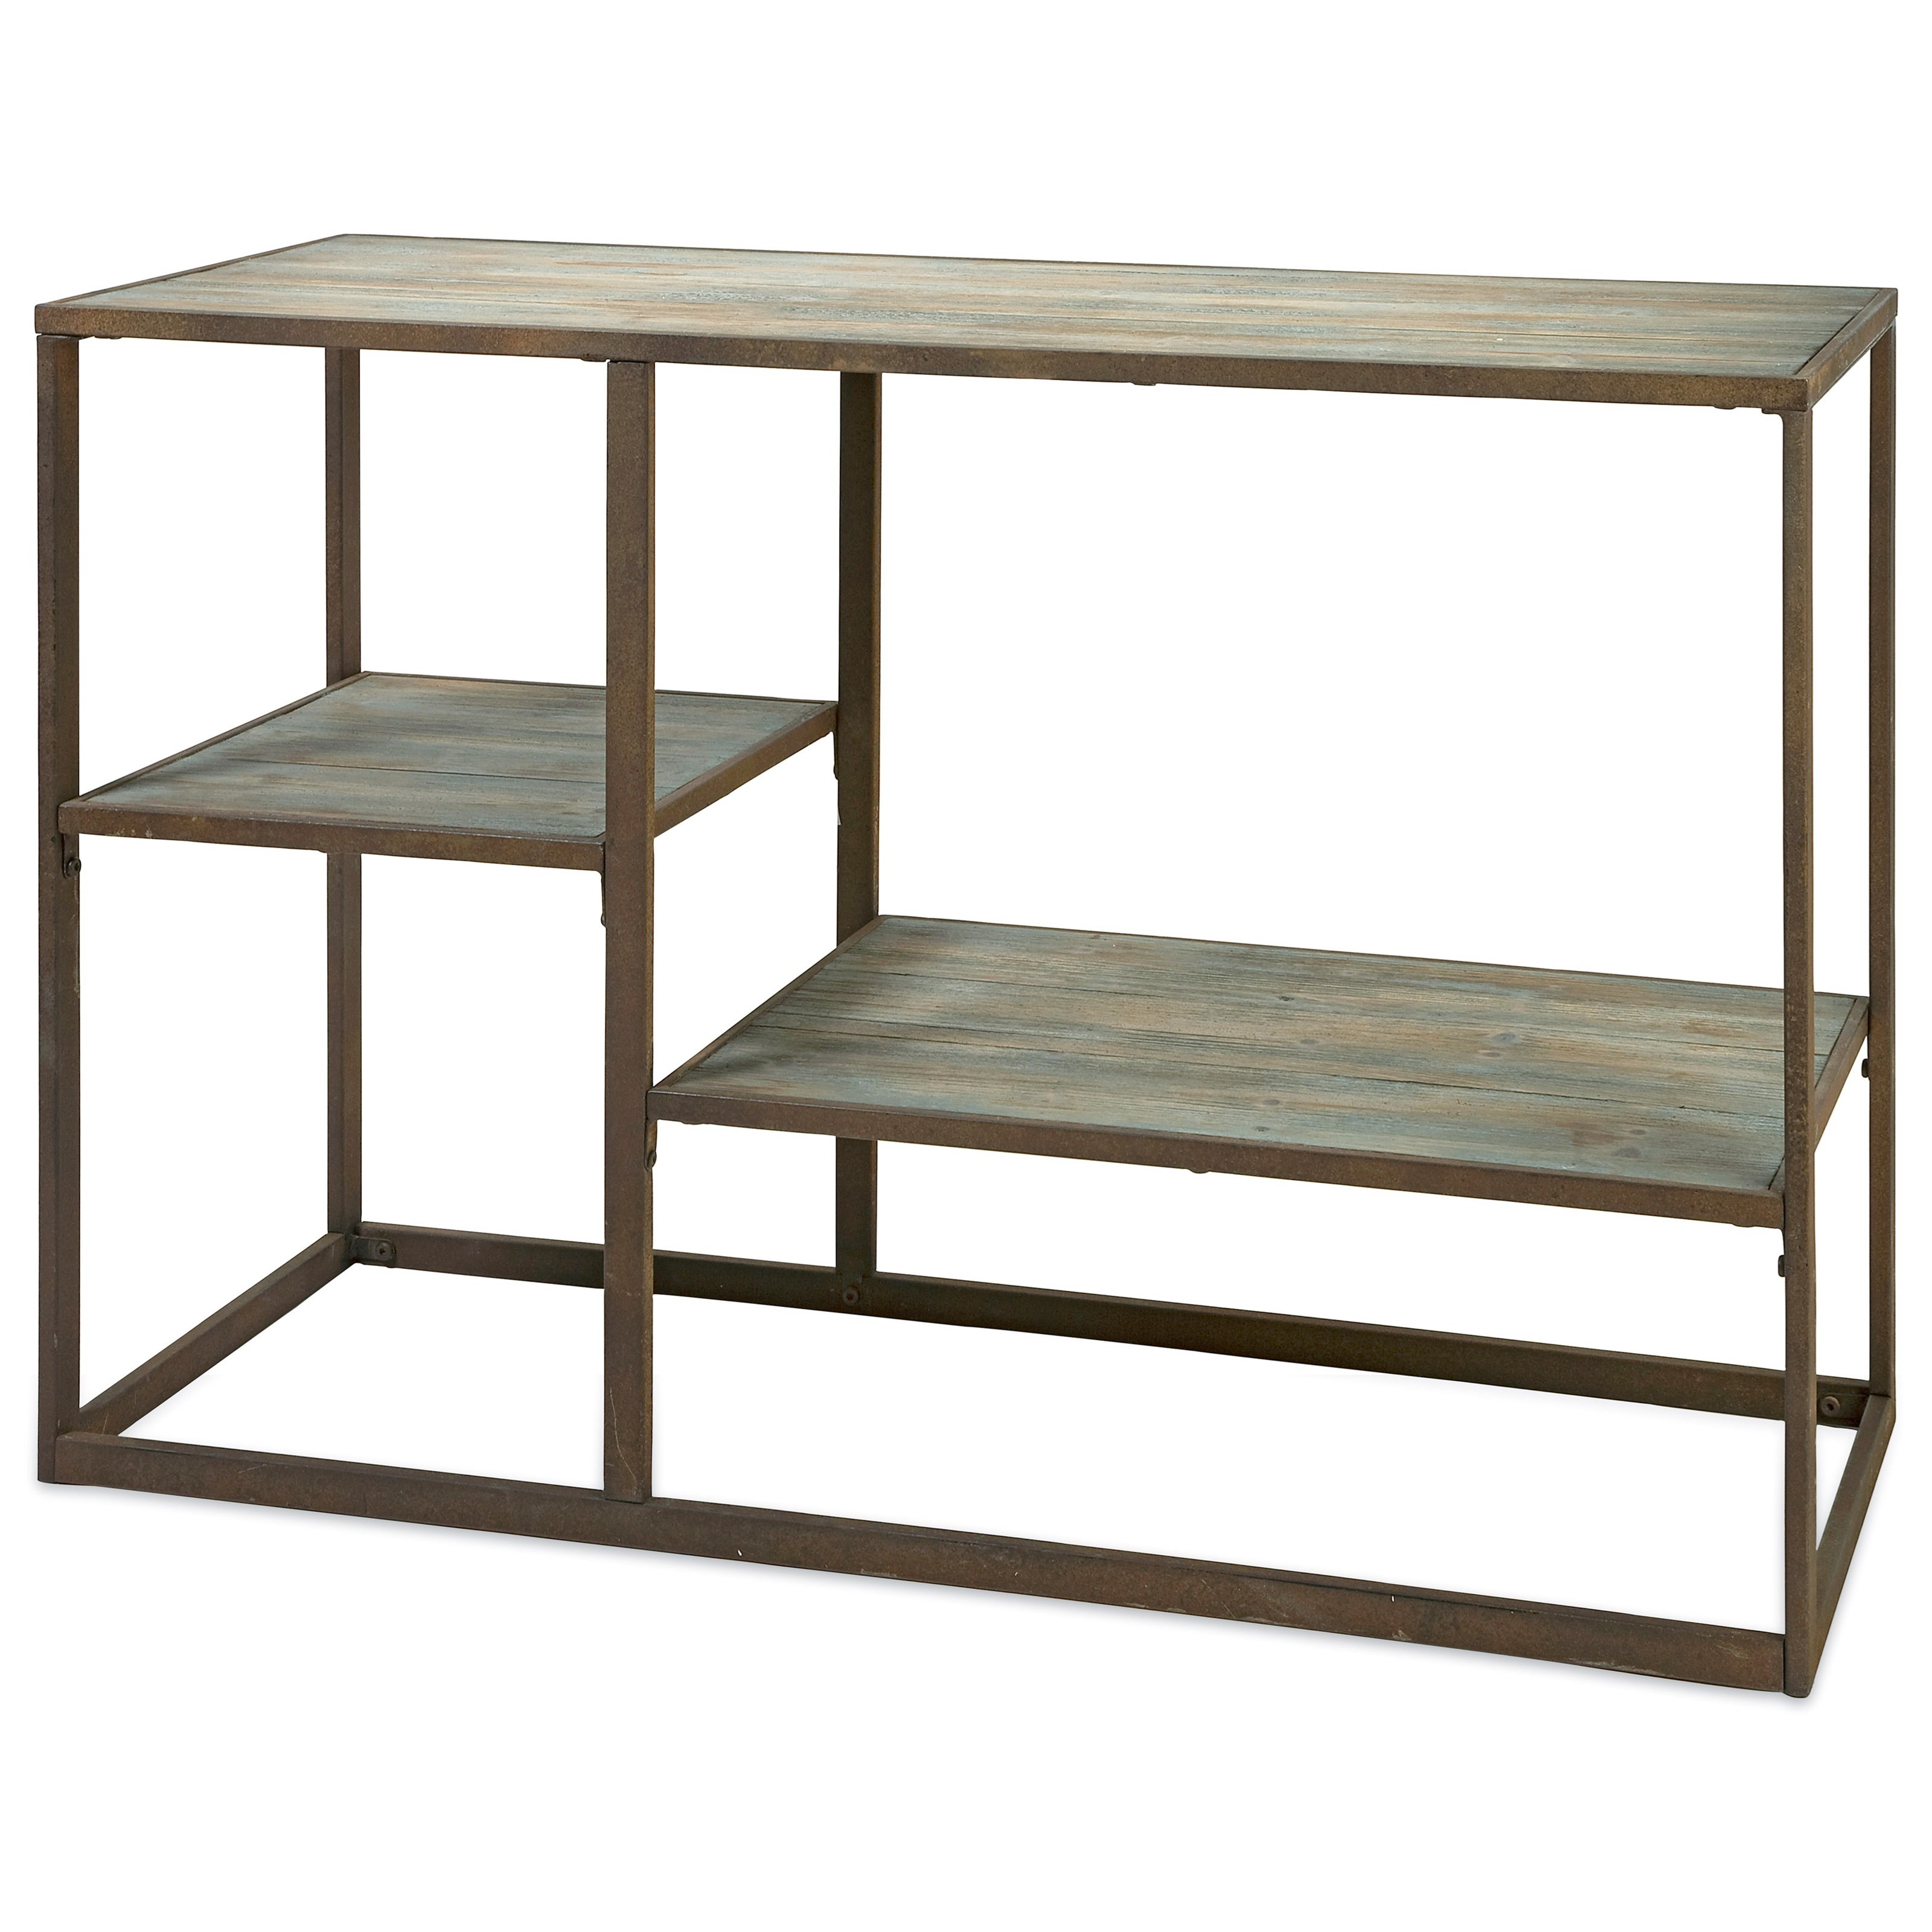 Accent Furniture Jestlin Wood and Iron Shelf by IMAX Worldwide Home at Alison Craig Home Furnishings